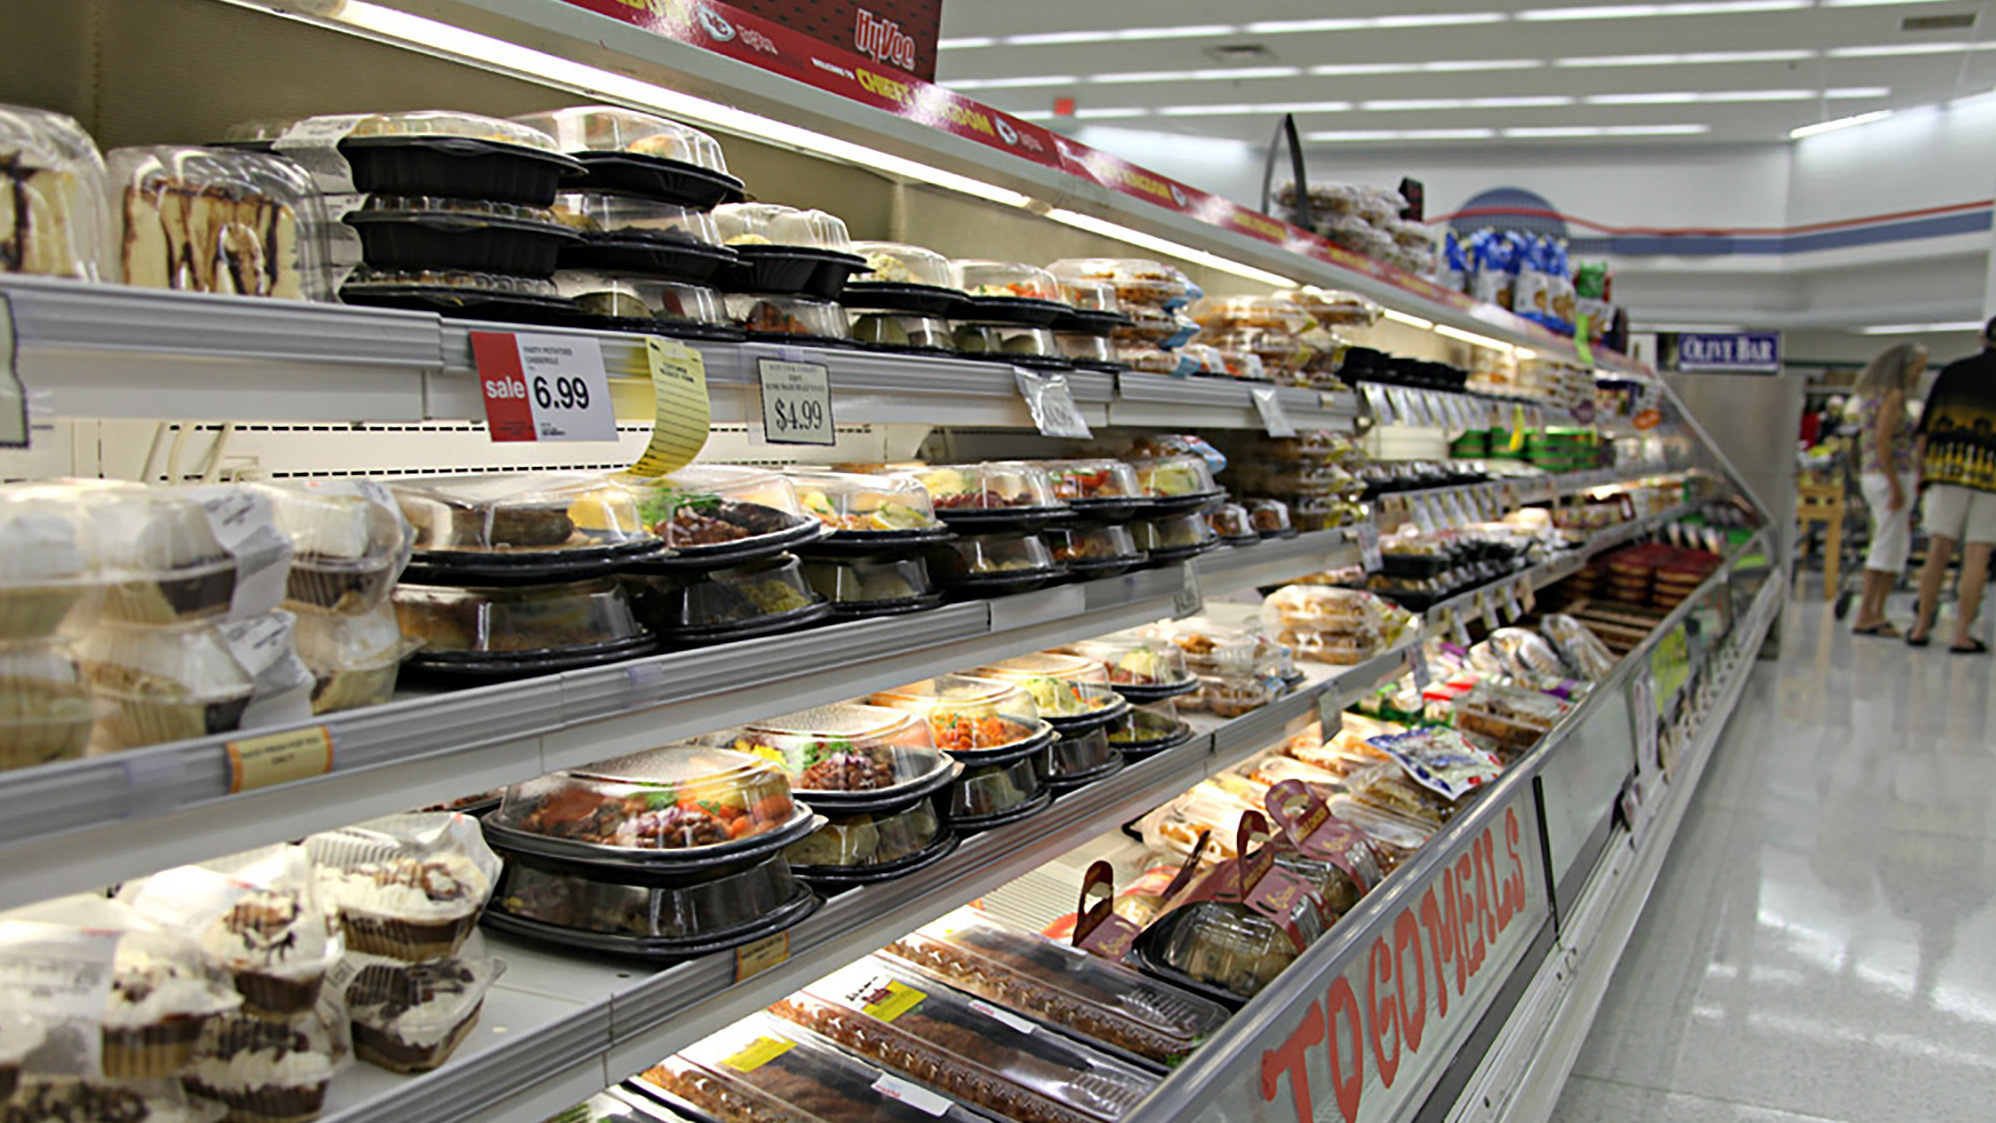 Supermarkets Waste Tons Of Food As They Woo Shoppers